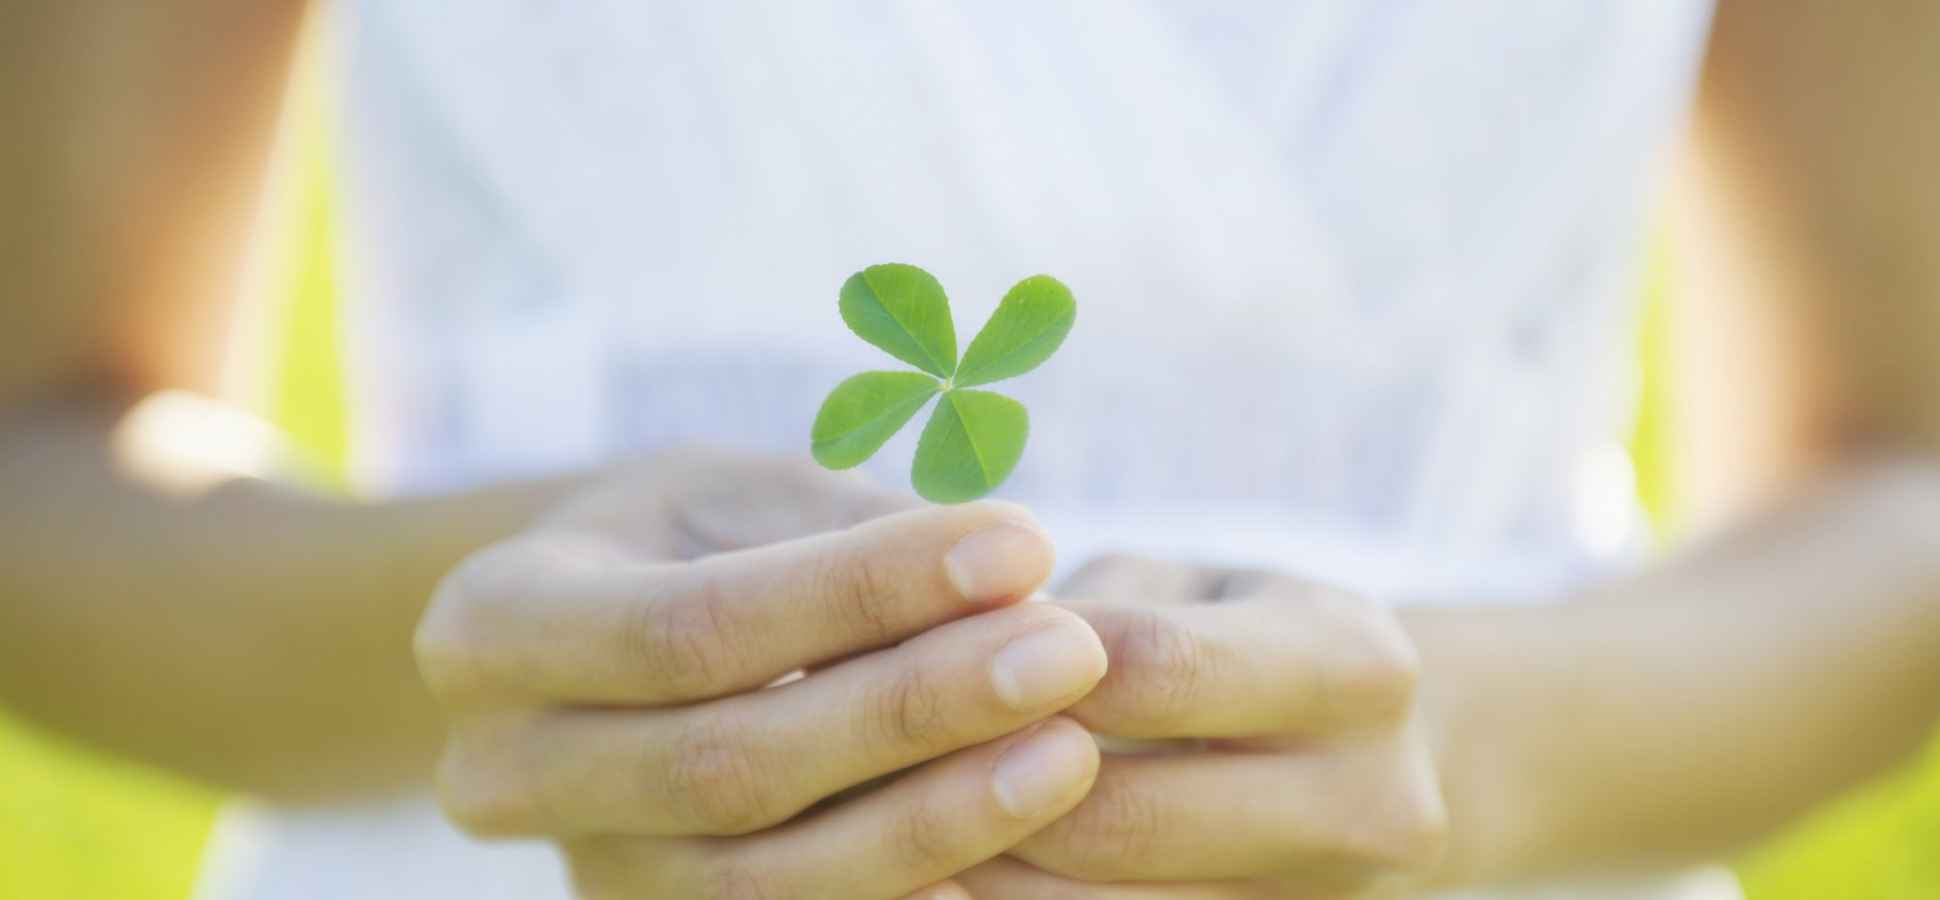 5 Scientifically Proven Ways to Make Your Own Luck